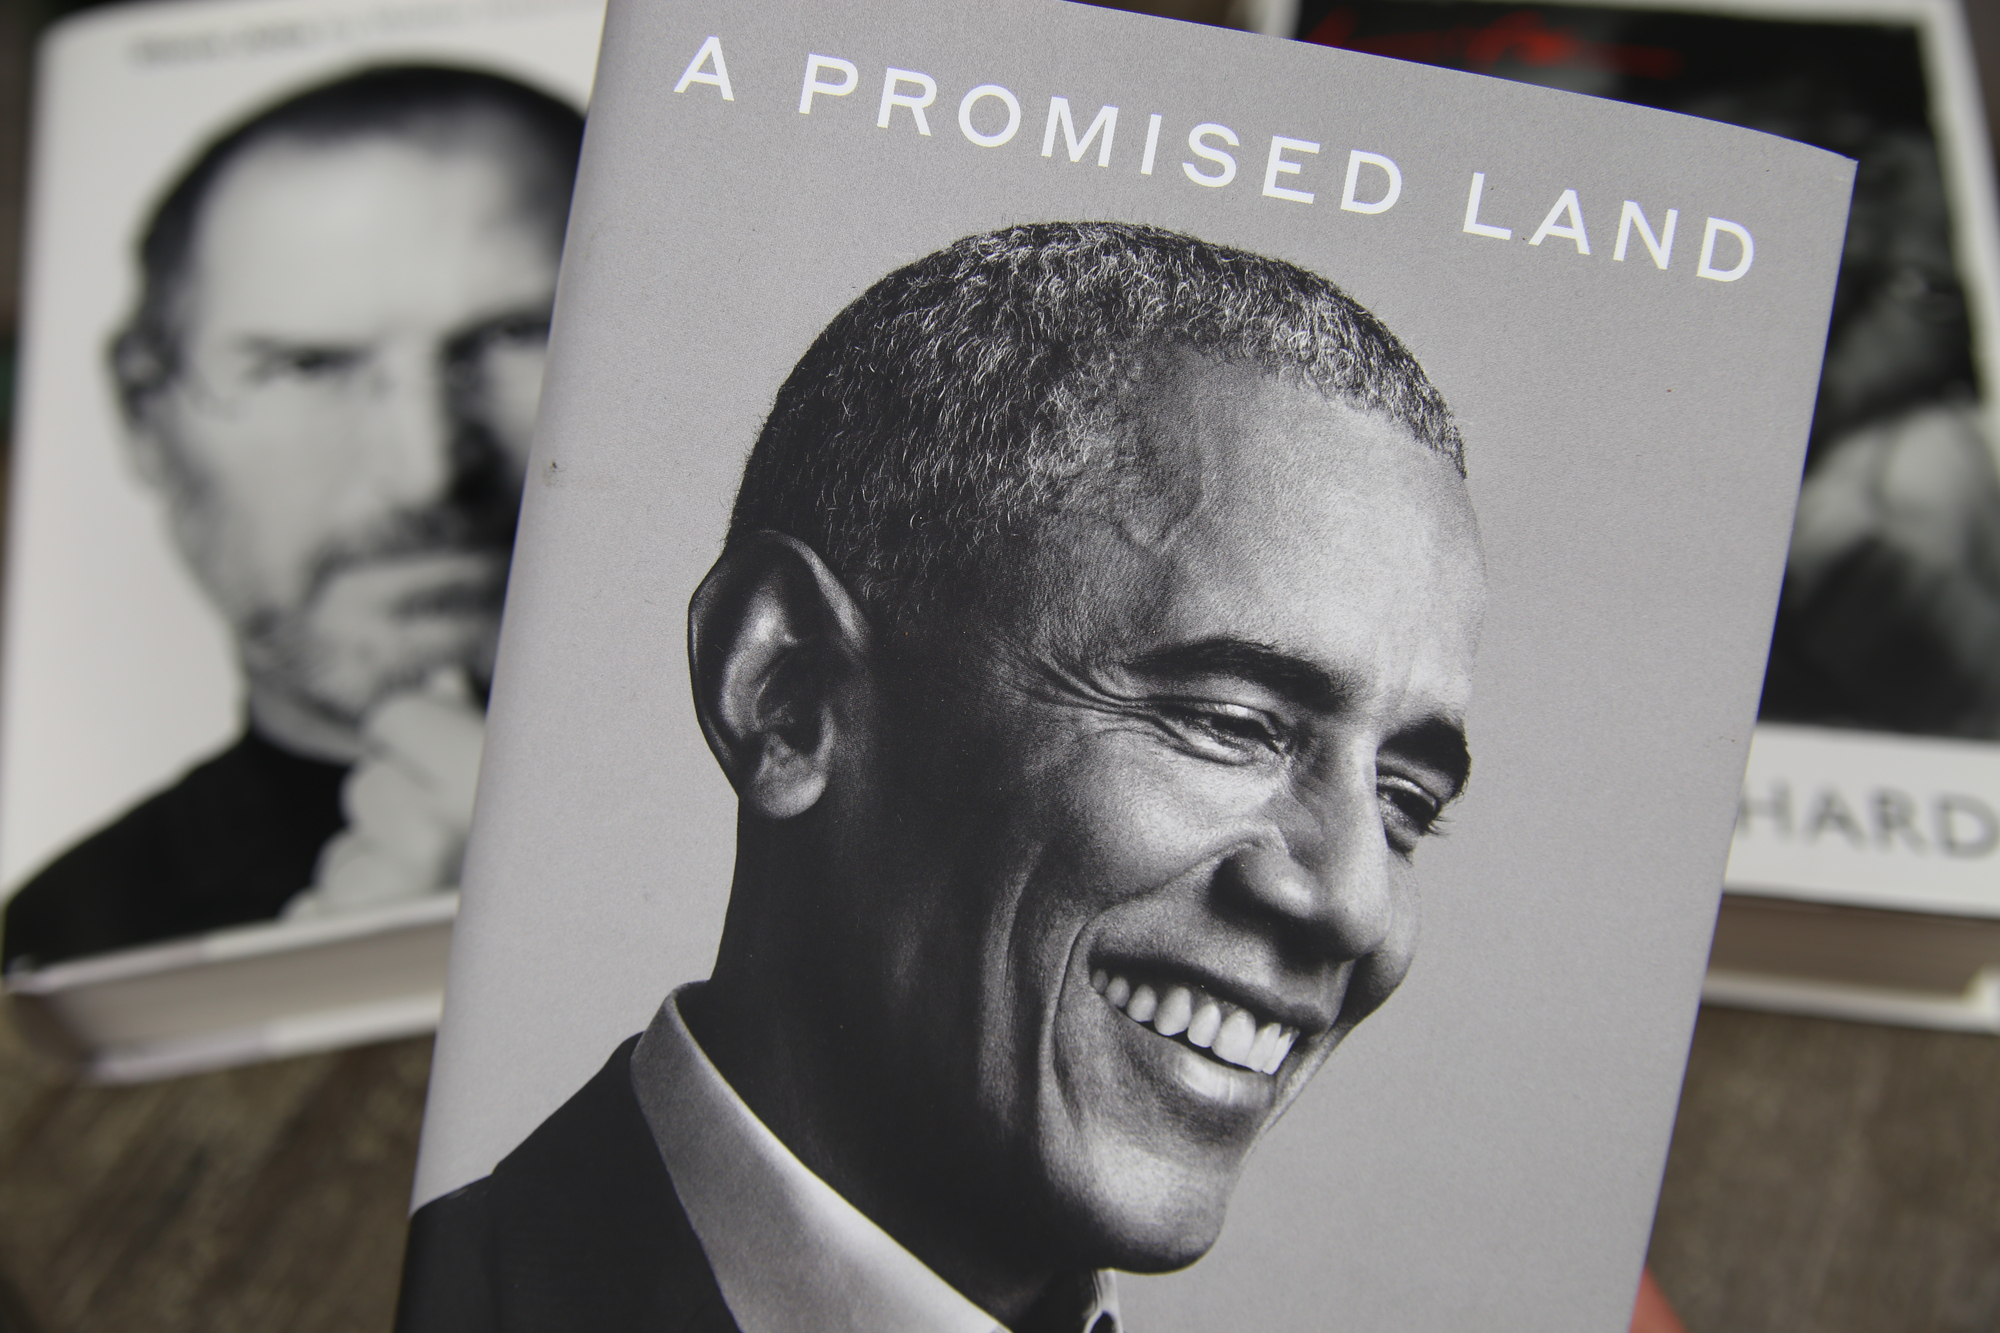 Book cover of A Promised Land by Barack Obama